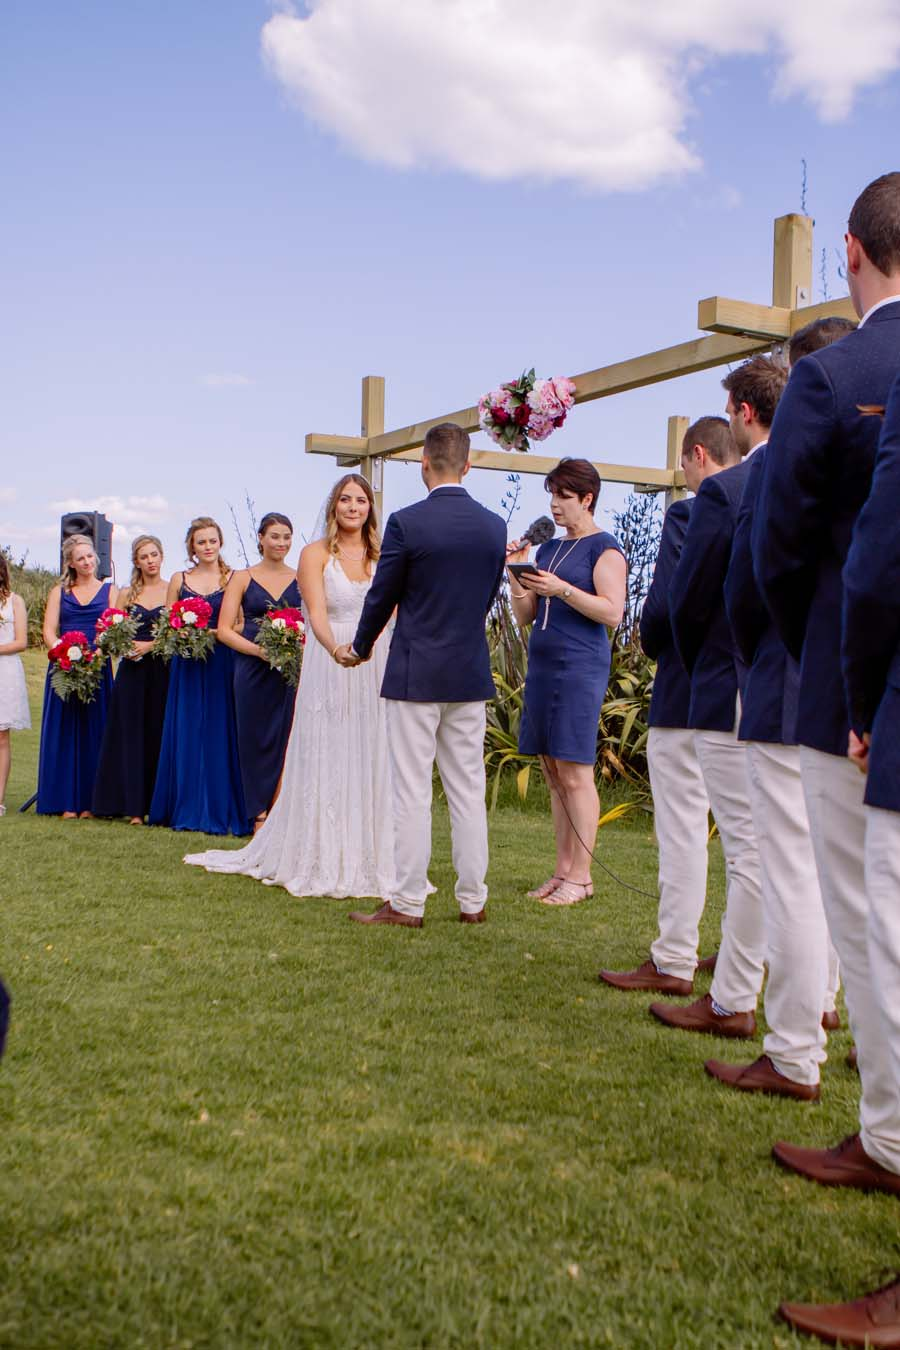 nz_wedding_photographer_castaways_waiuku-1216